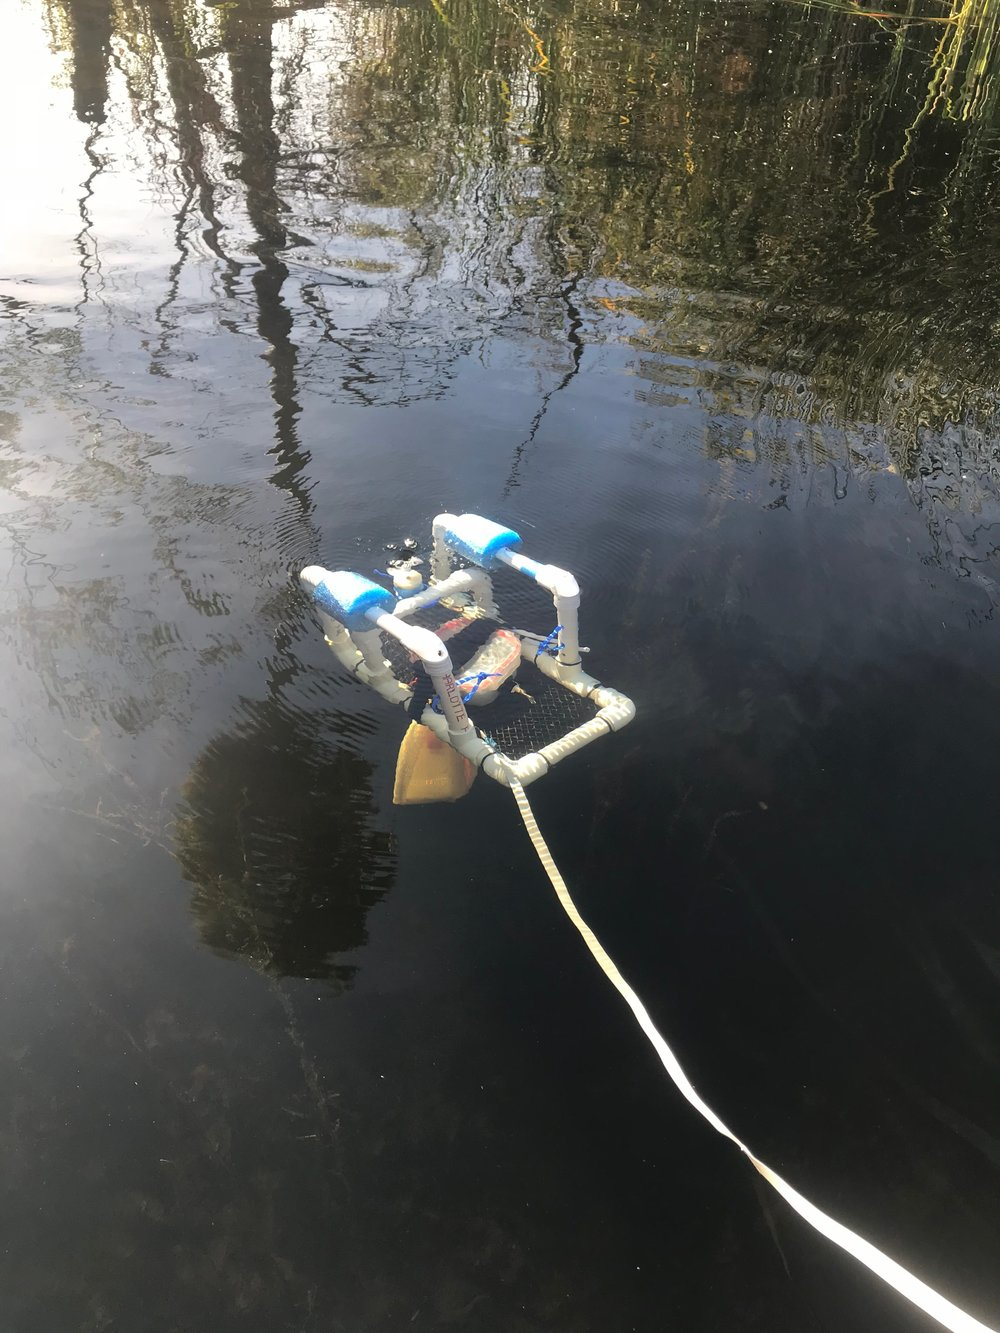 12/17: Taking lake measurements using thermistor and ROV. Task for next semester: add more sensors and autonomy.